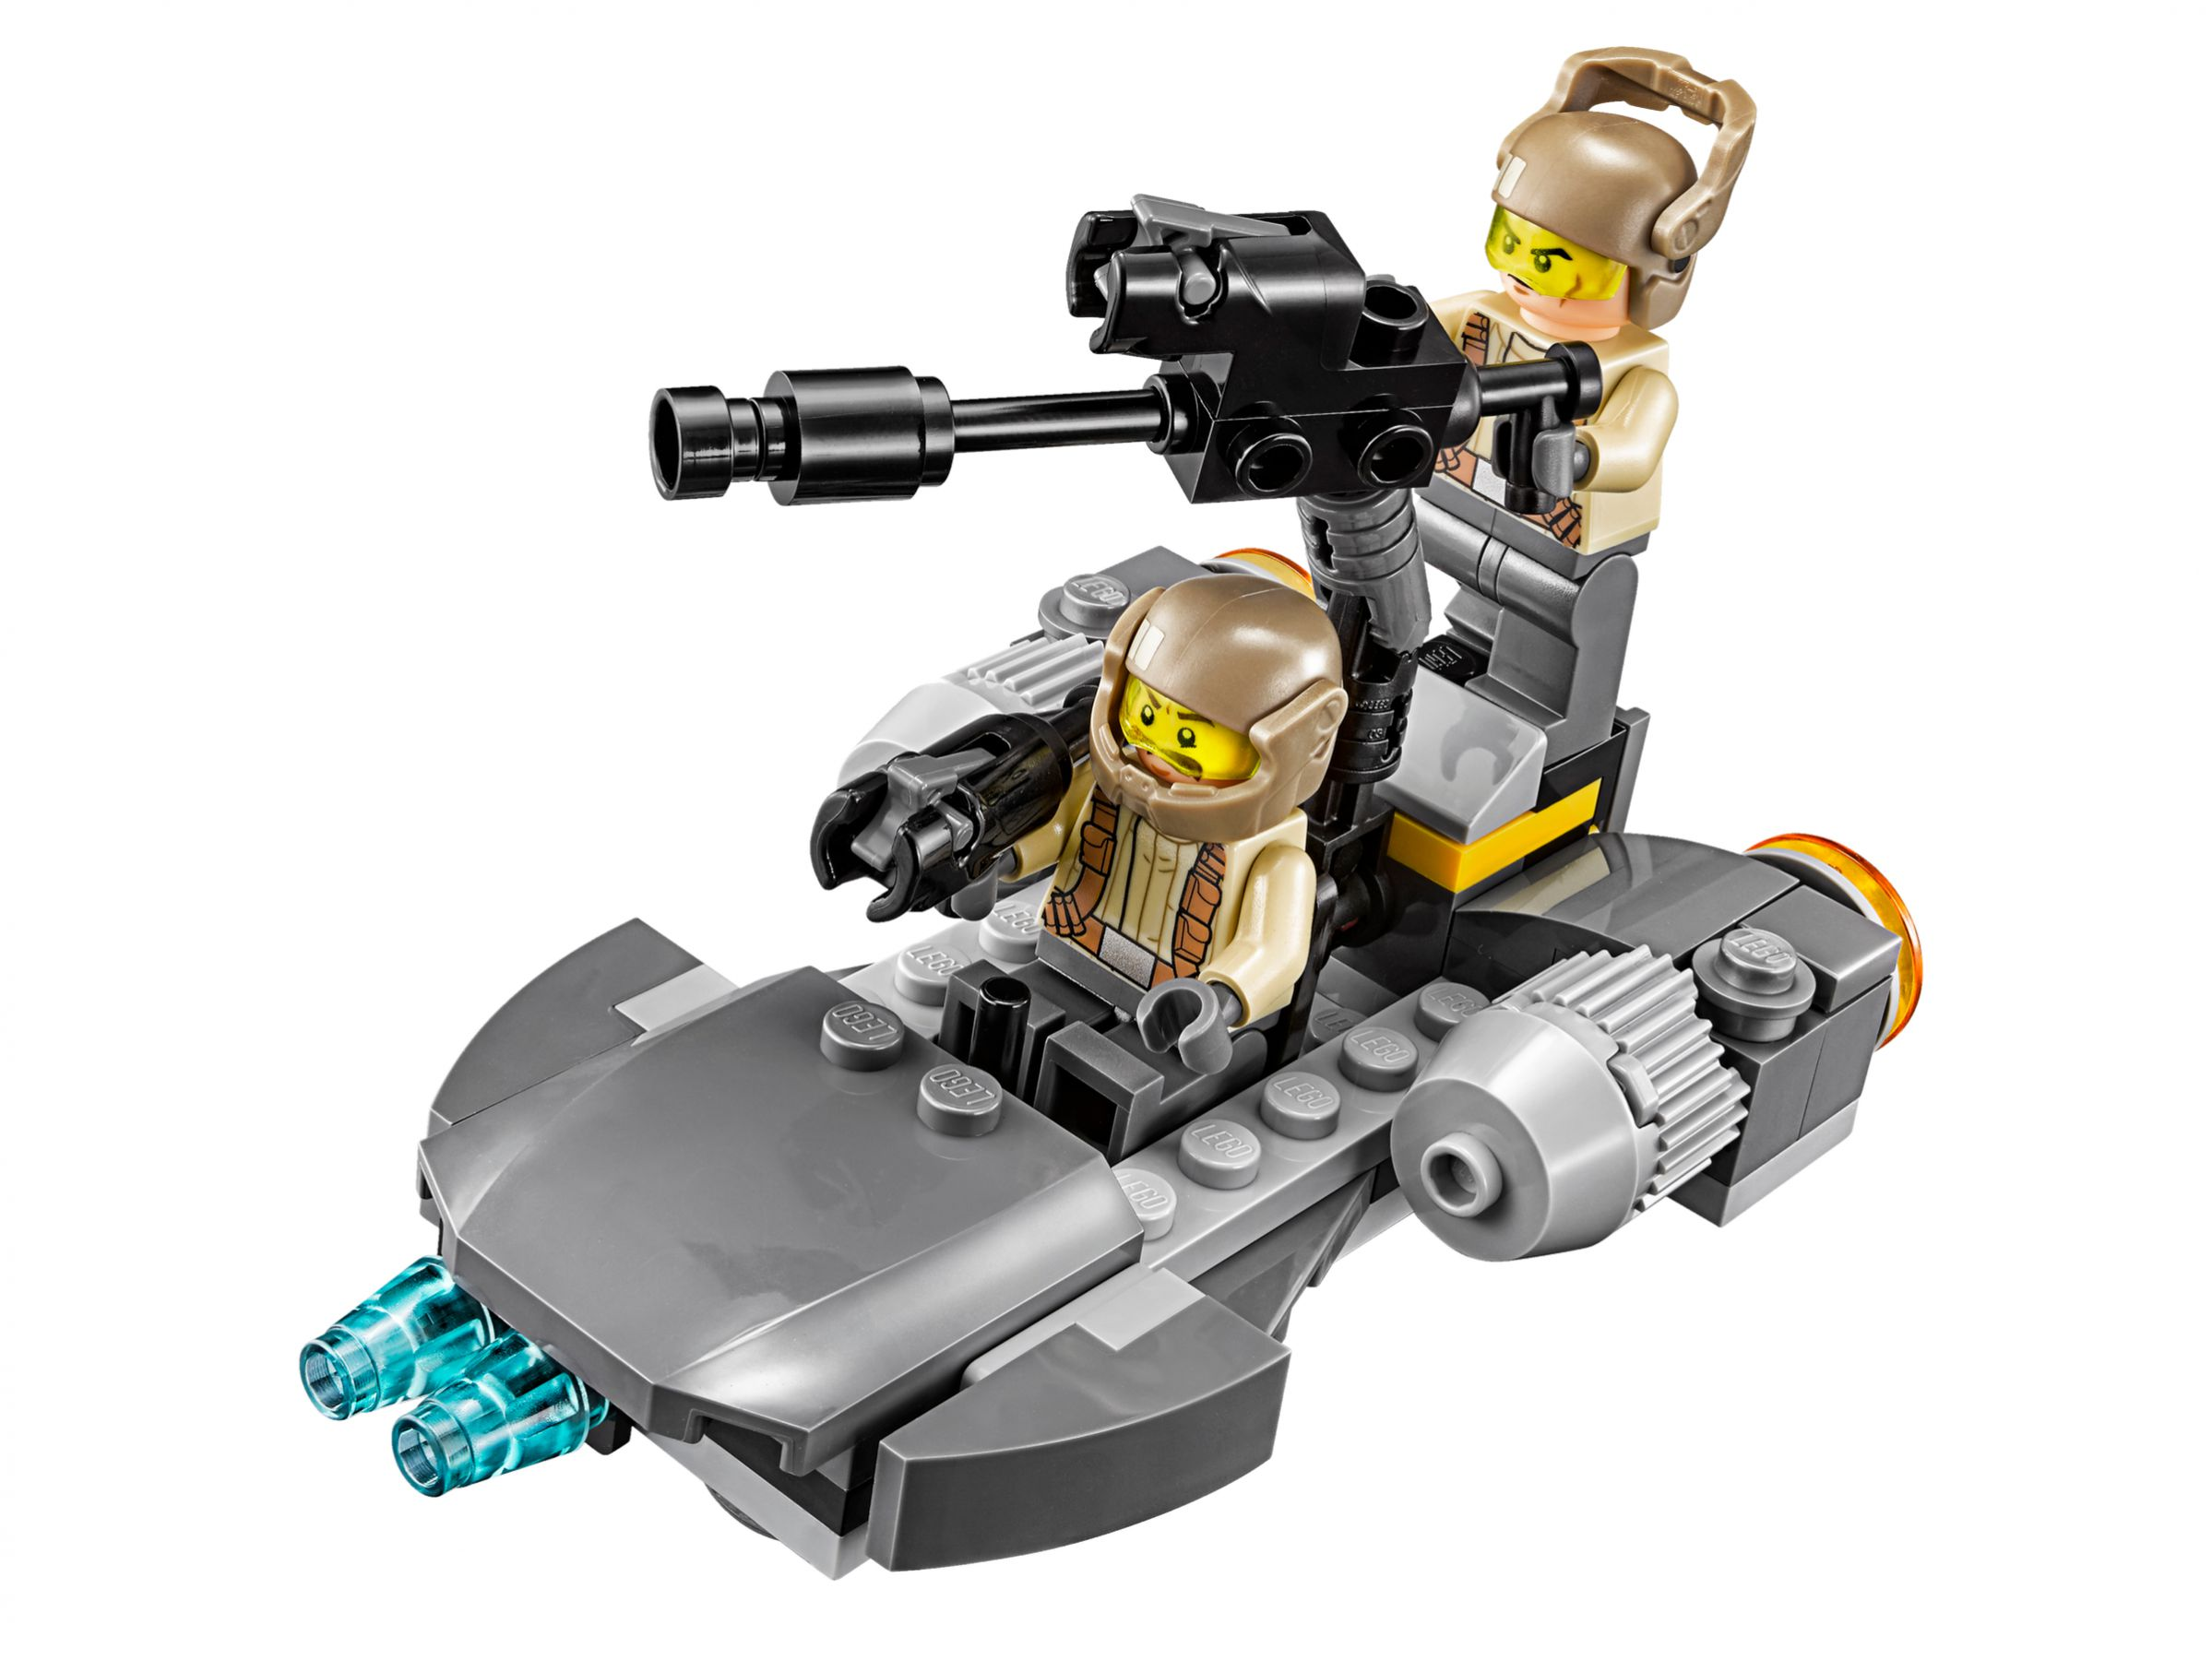 LEGO Star Wars 75131 Resistance Trooper Battle Pack LEGO_75131_alt2.jpg